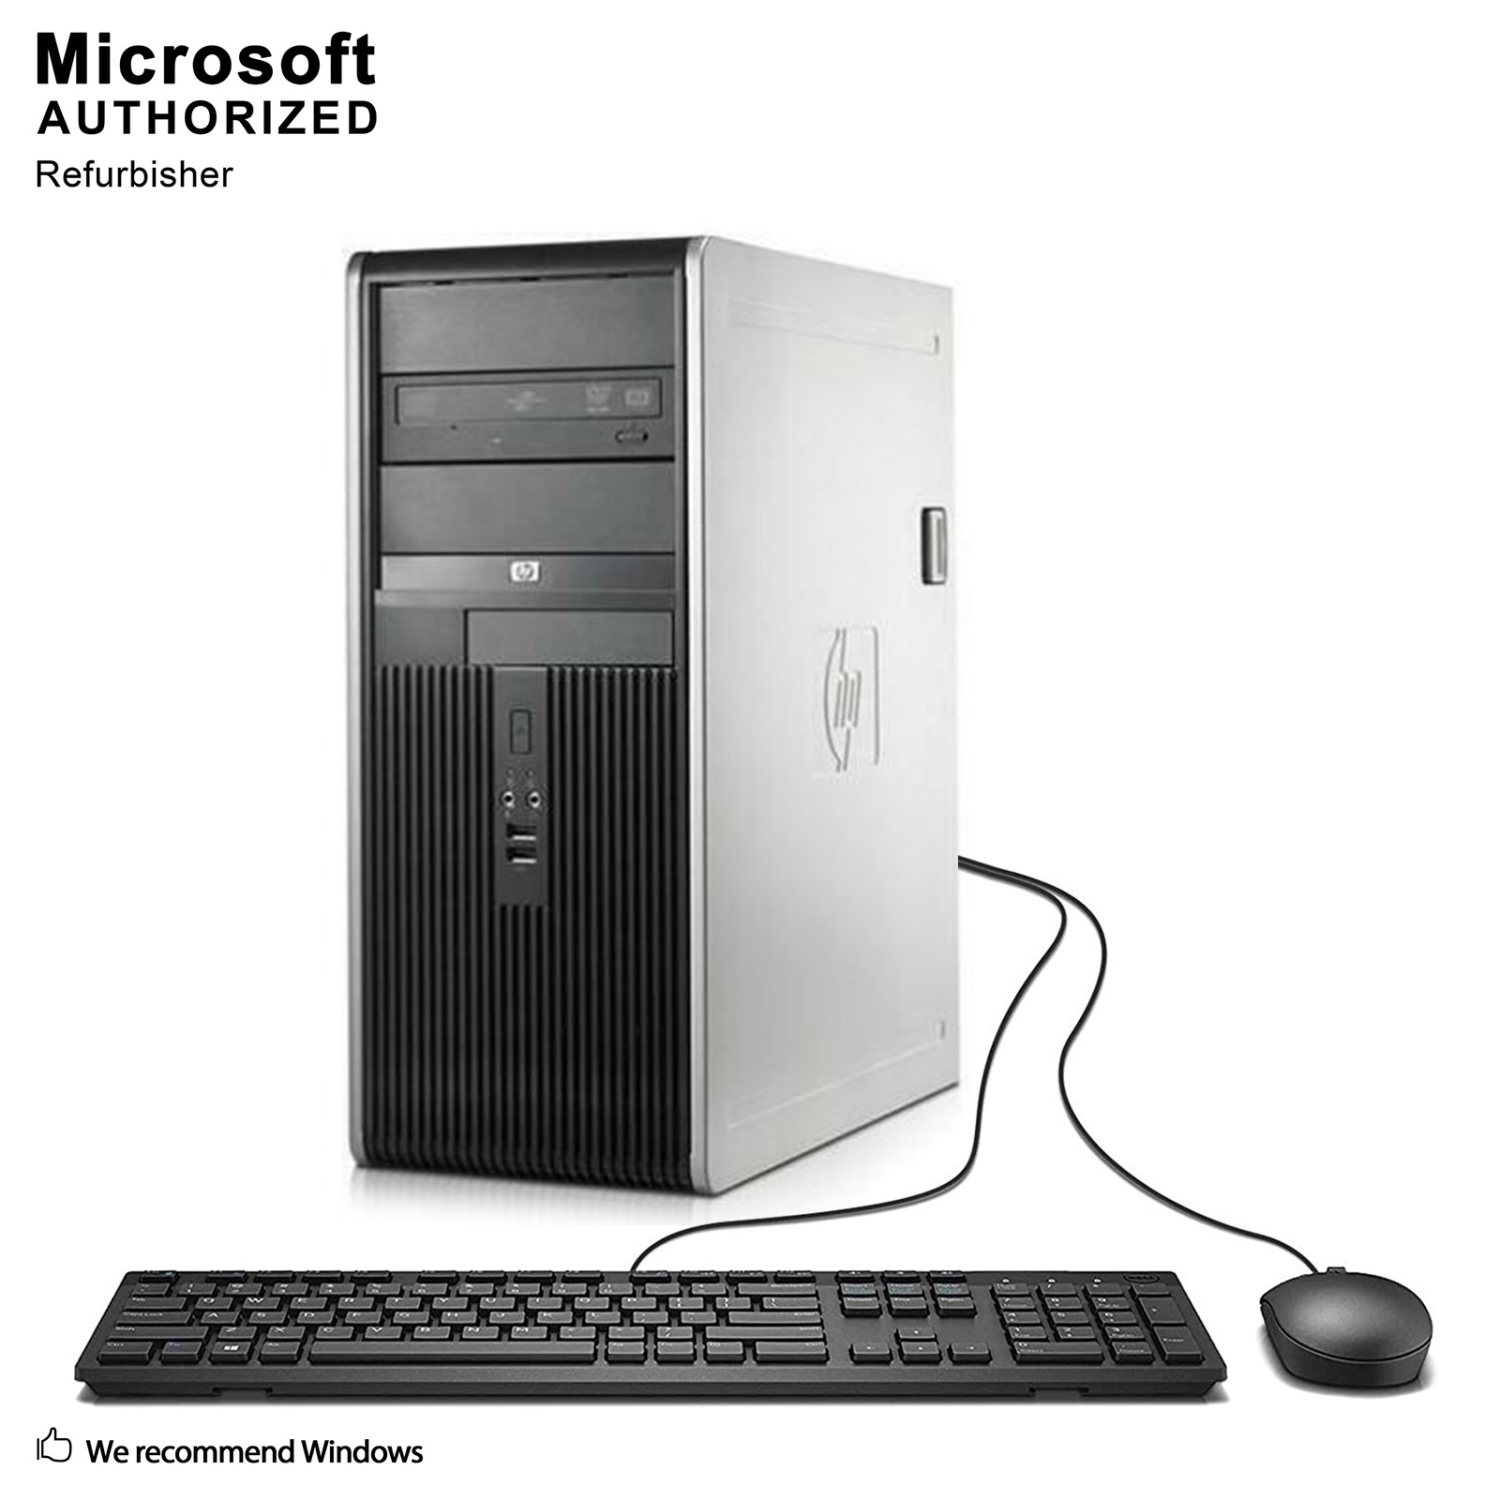 Hp Dc7900 Tw Intel Core 2 Duo E7500 293ghz 4g Ddr2 Ram 500g Hdd Prosesor C2d Dvd Rom Wifi Win10 Home English French Refurbished Everyday Computing Best Buy